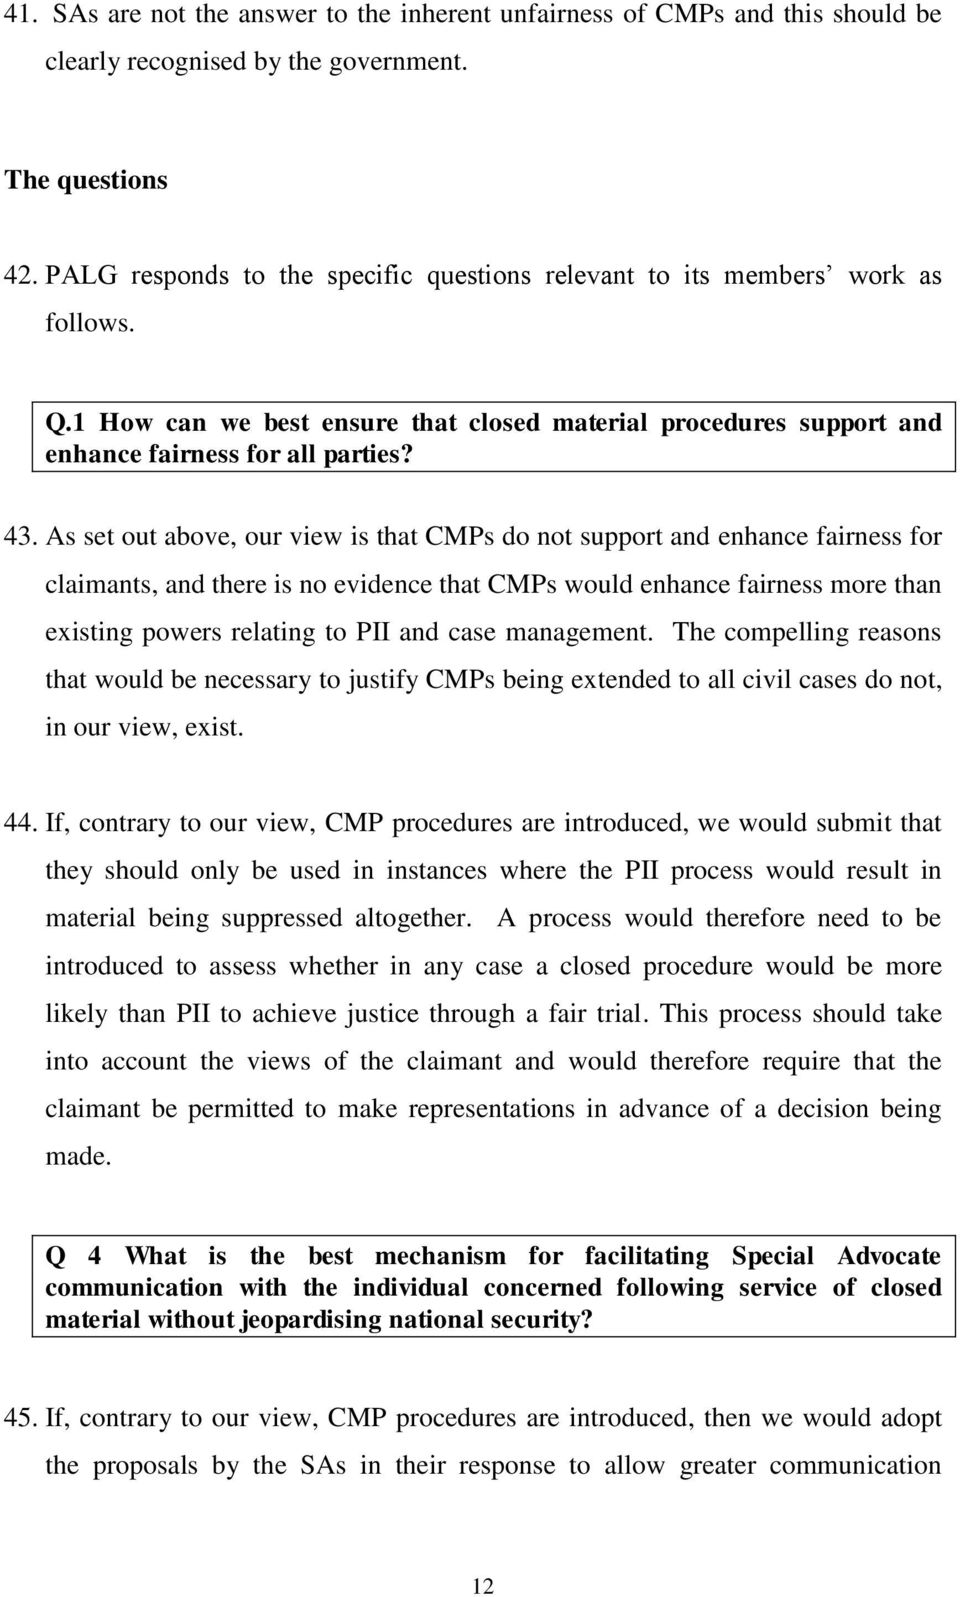 As set out above, our view is that CMPs do not support and enhance fairness for claimants, and there is no evidence that CMPs would enhance fairness more than existing powers relating to PII and case